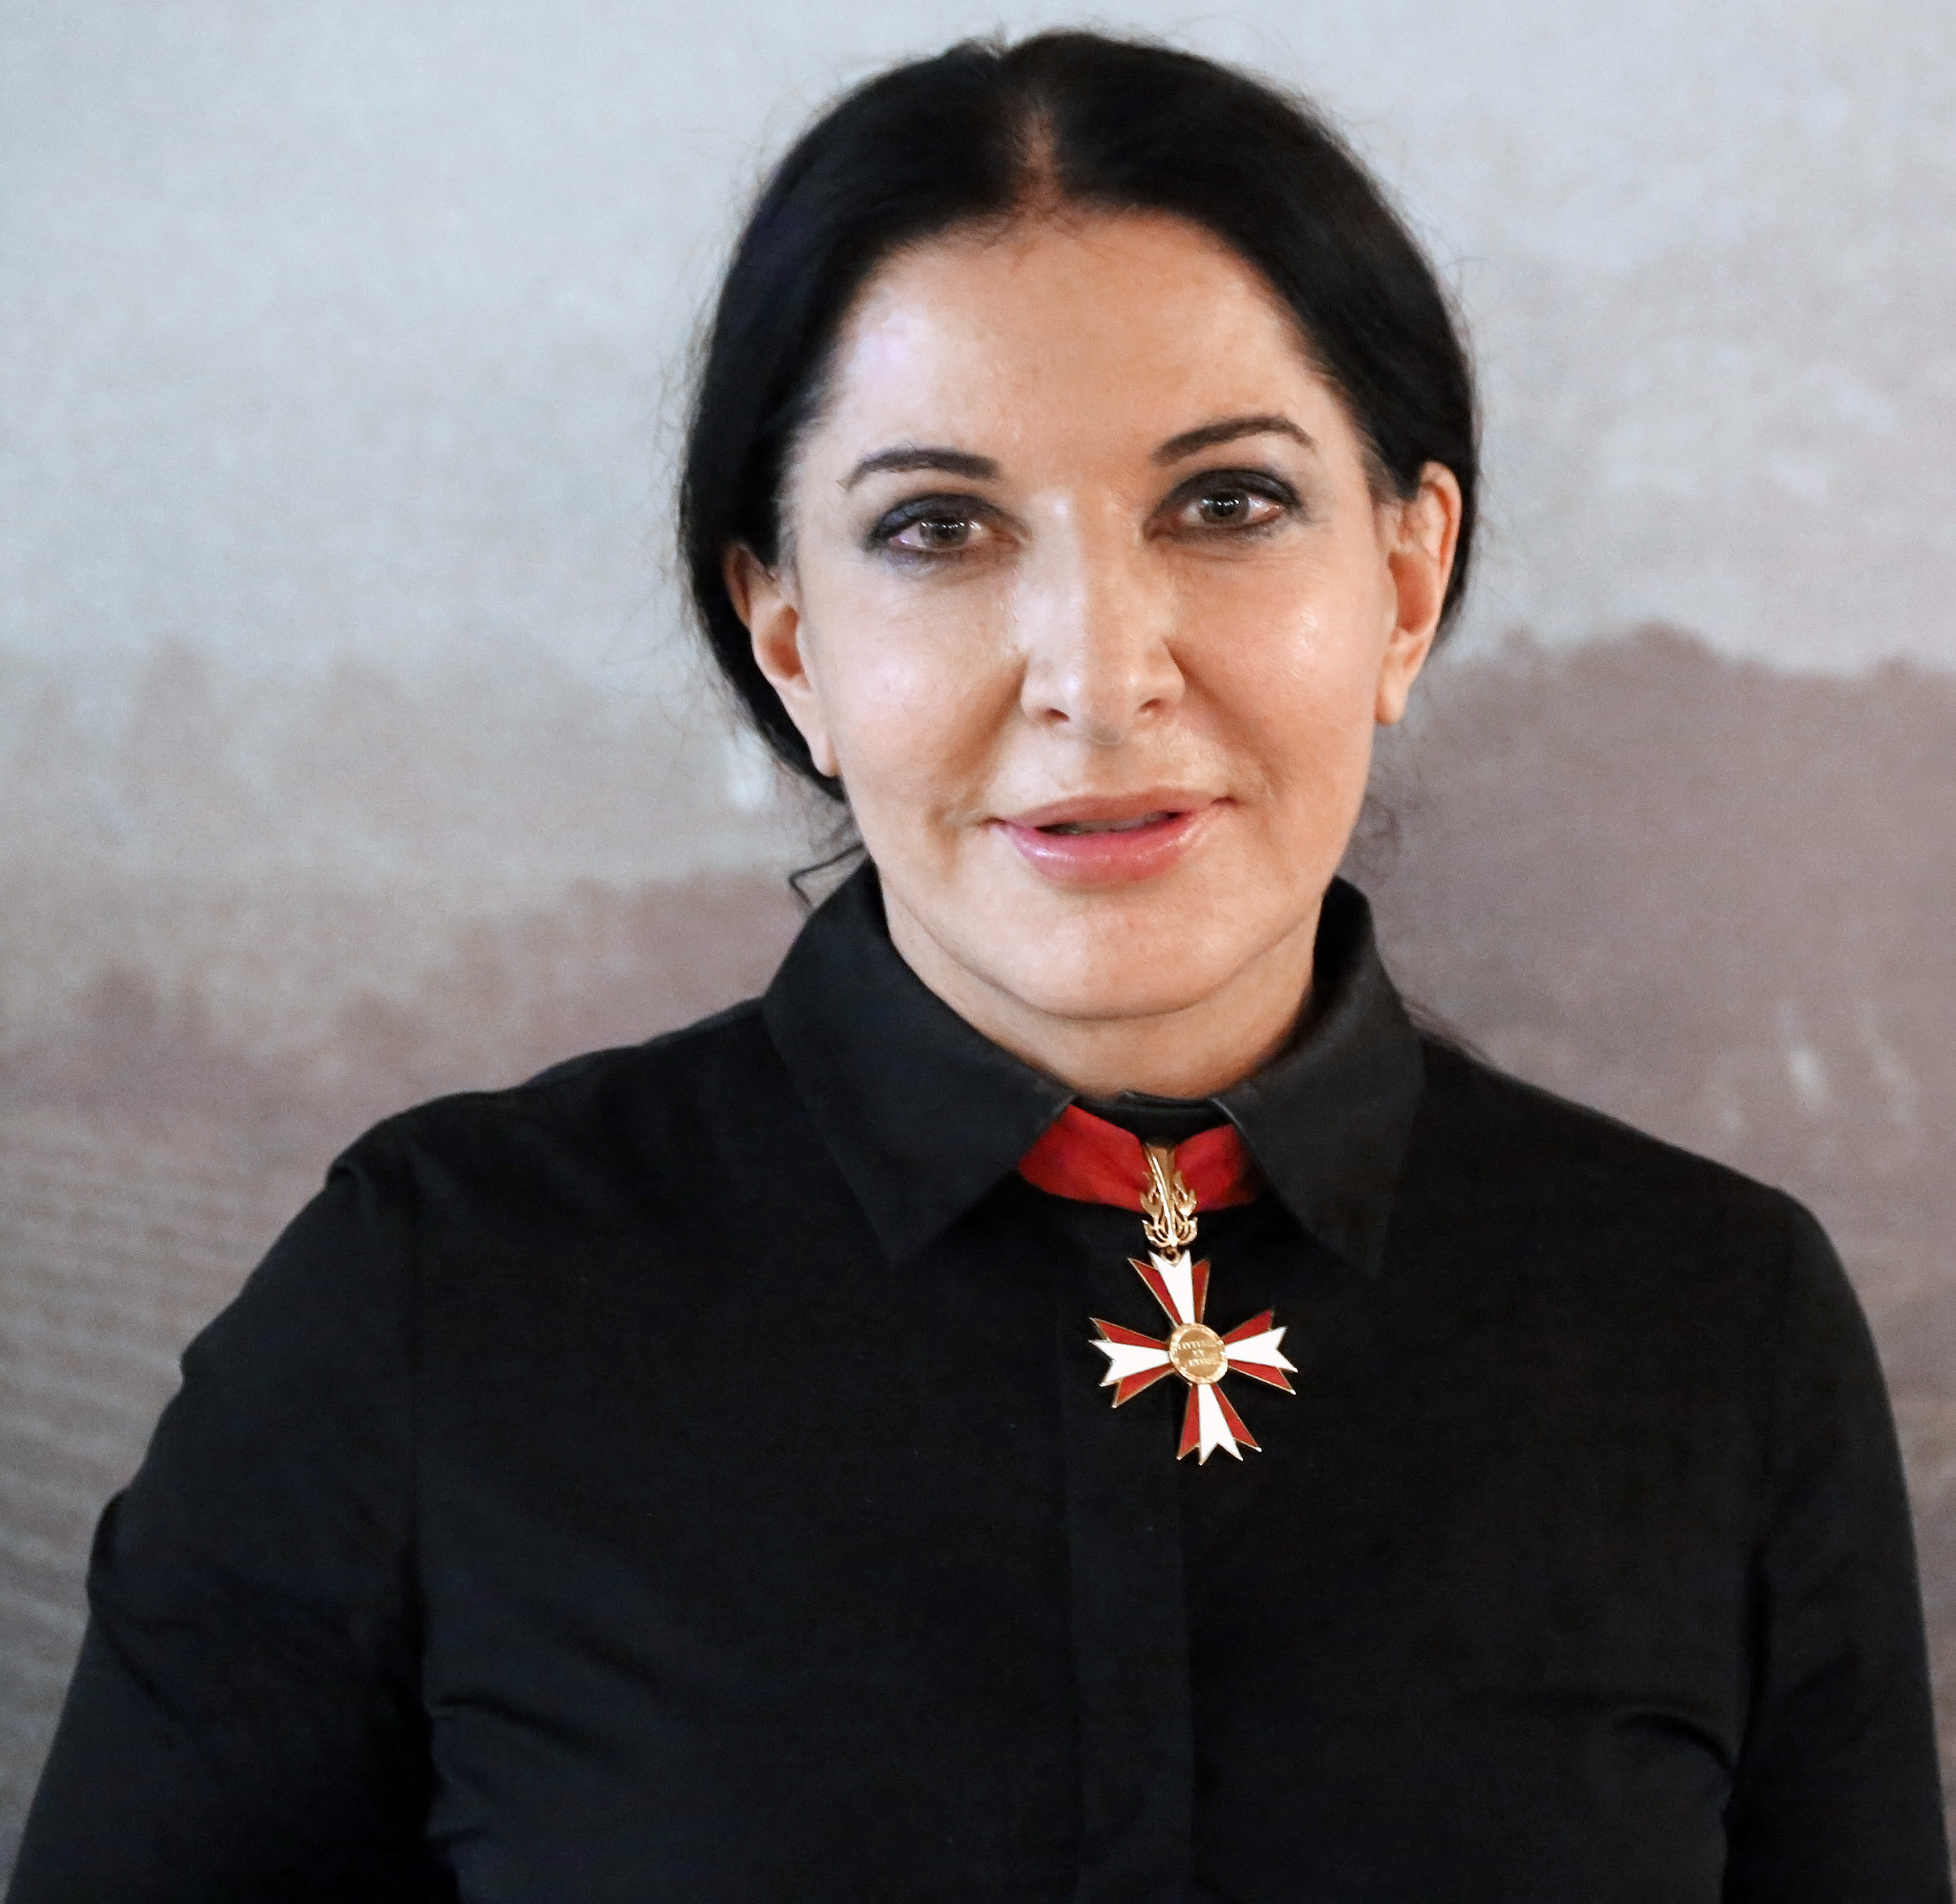 Image of Marina Abramovic from Wikidata